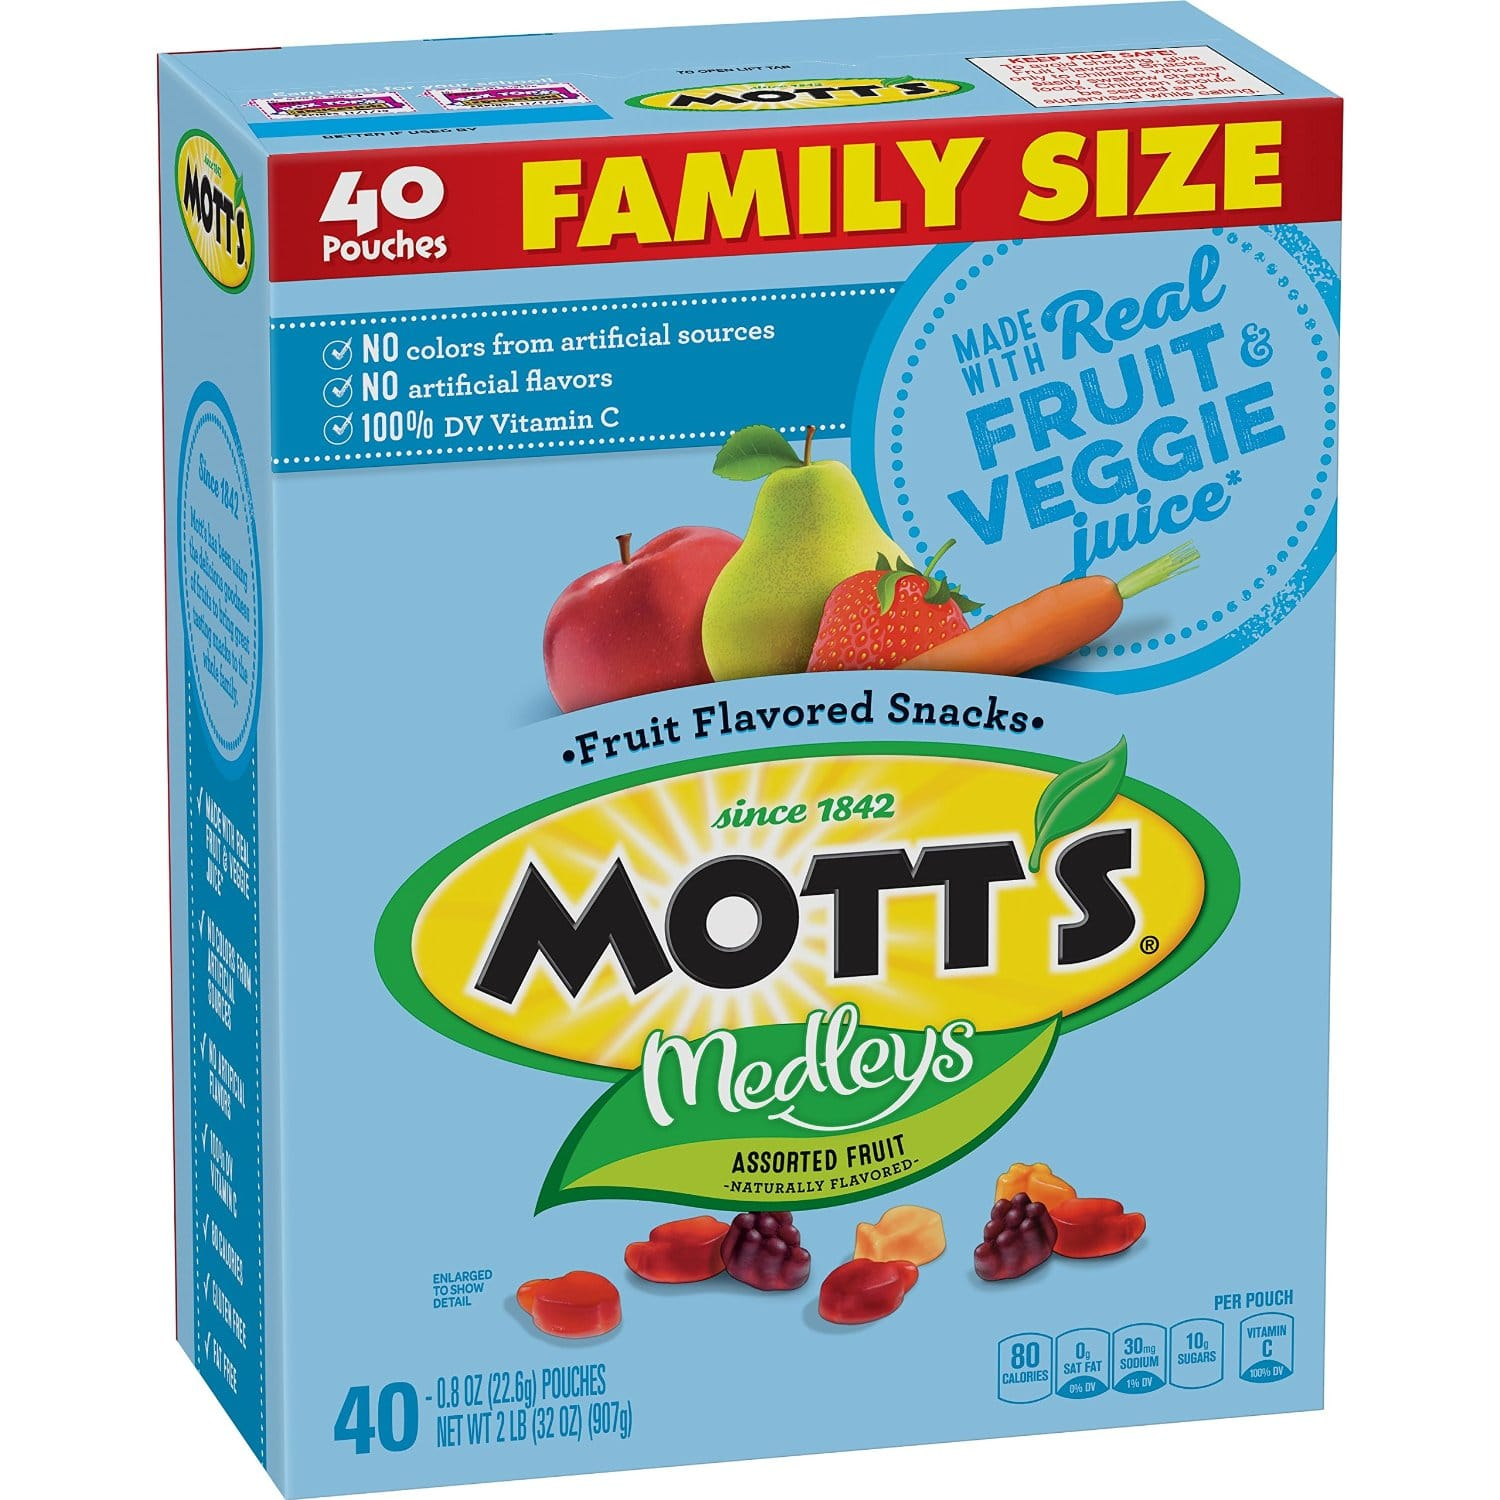 Mott's Medleys Fruit Flavored Snacks, Assorted Fruit, Value Pack, 40 Pouches, 32 oz for $4.91 at amazon